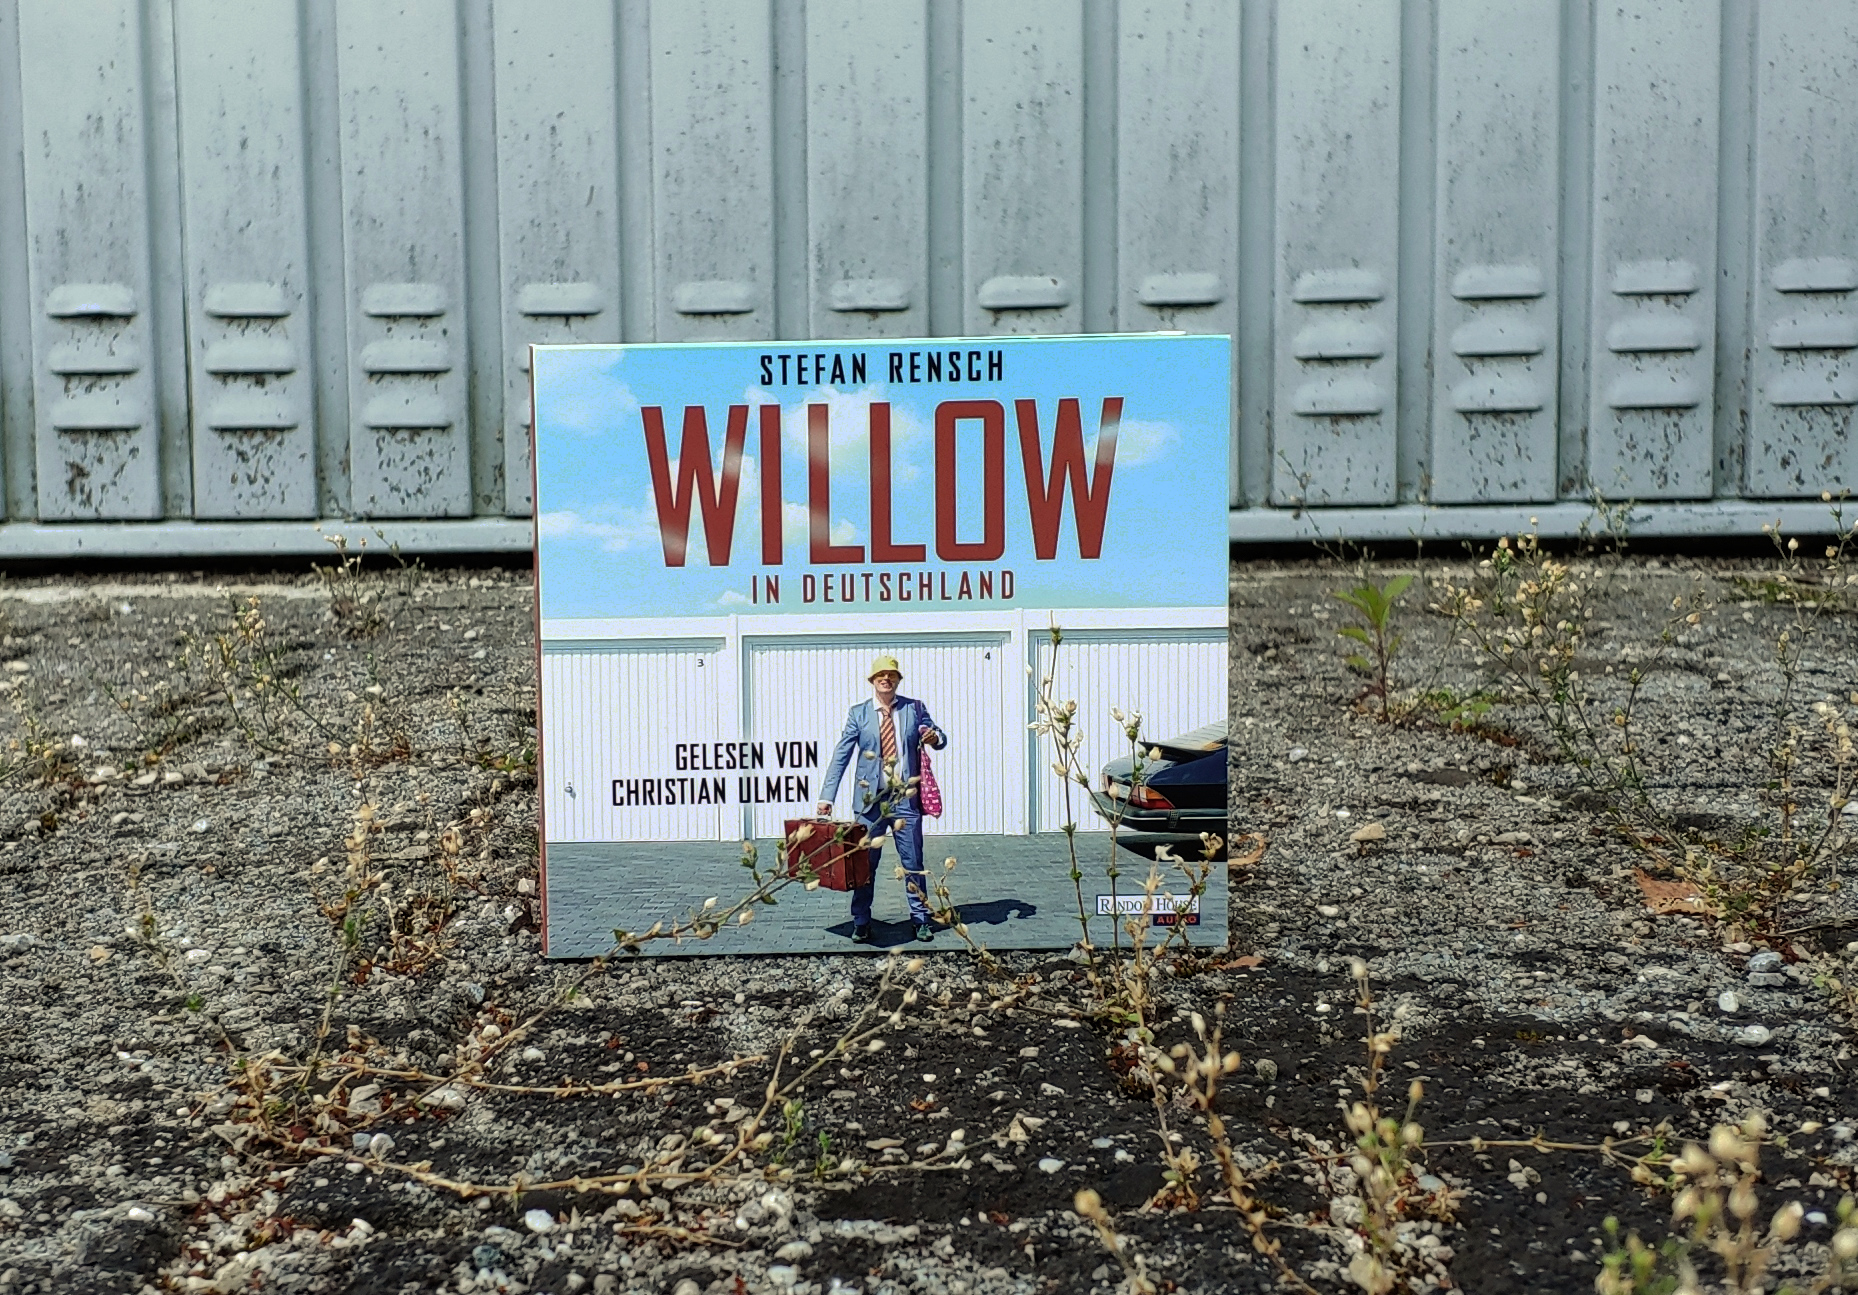 Willow in Deutschland – Stefan Rensch